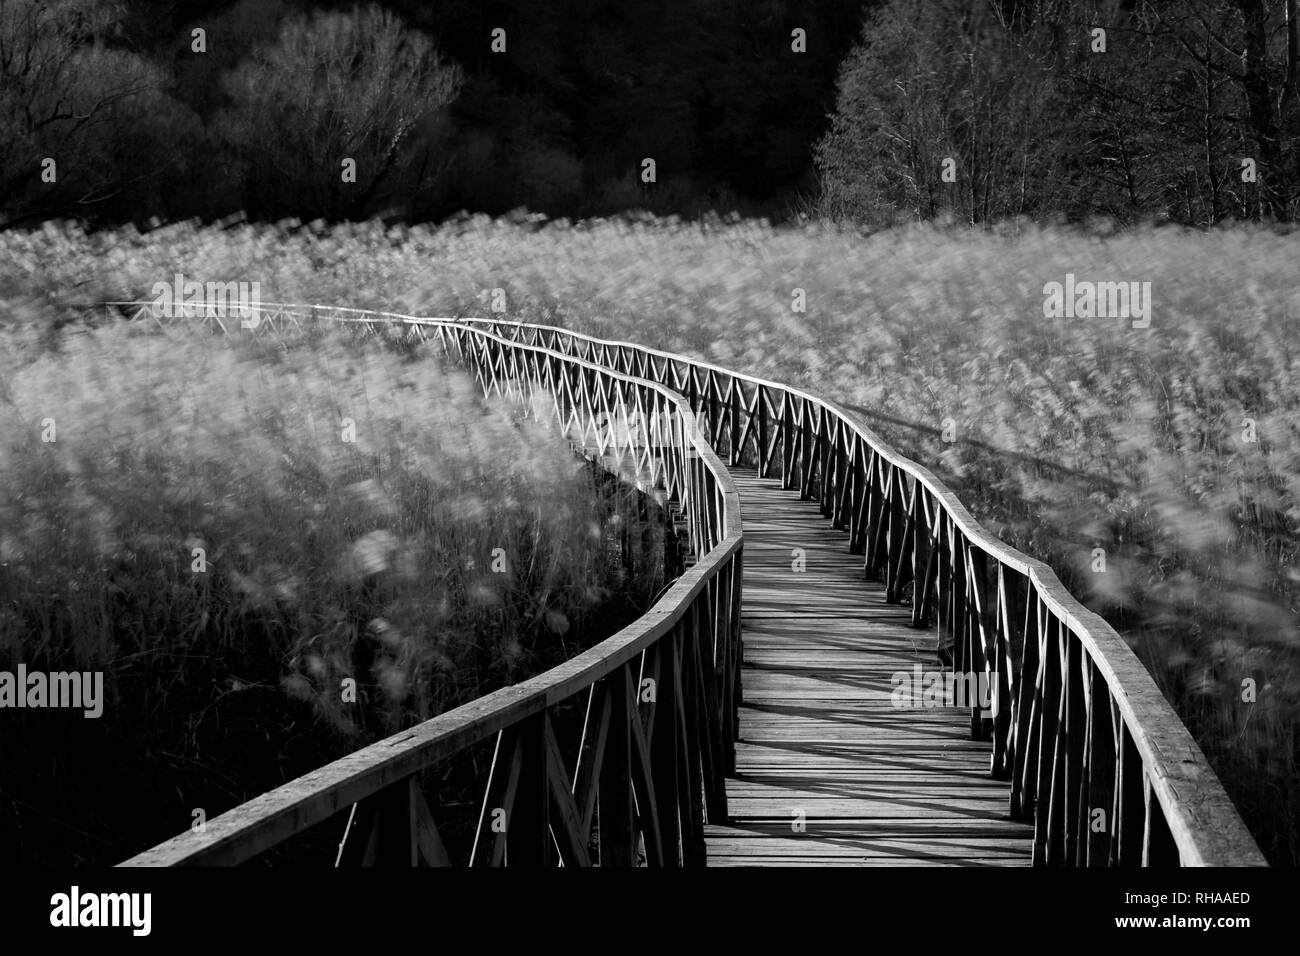 Wooden bridge over wheat country field - Stock Image